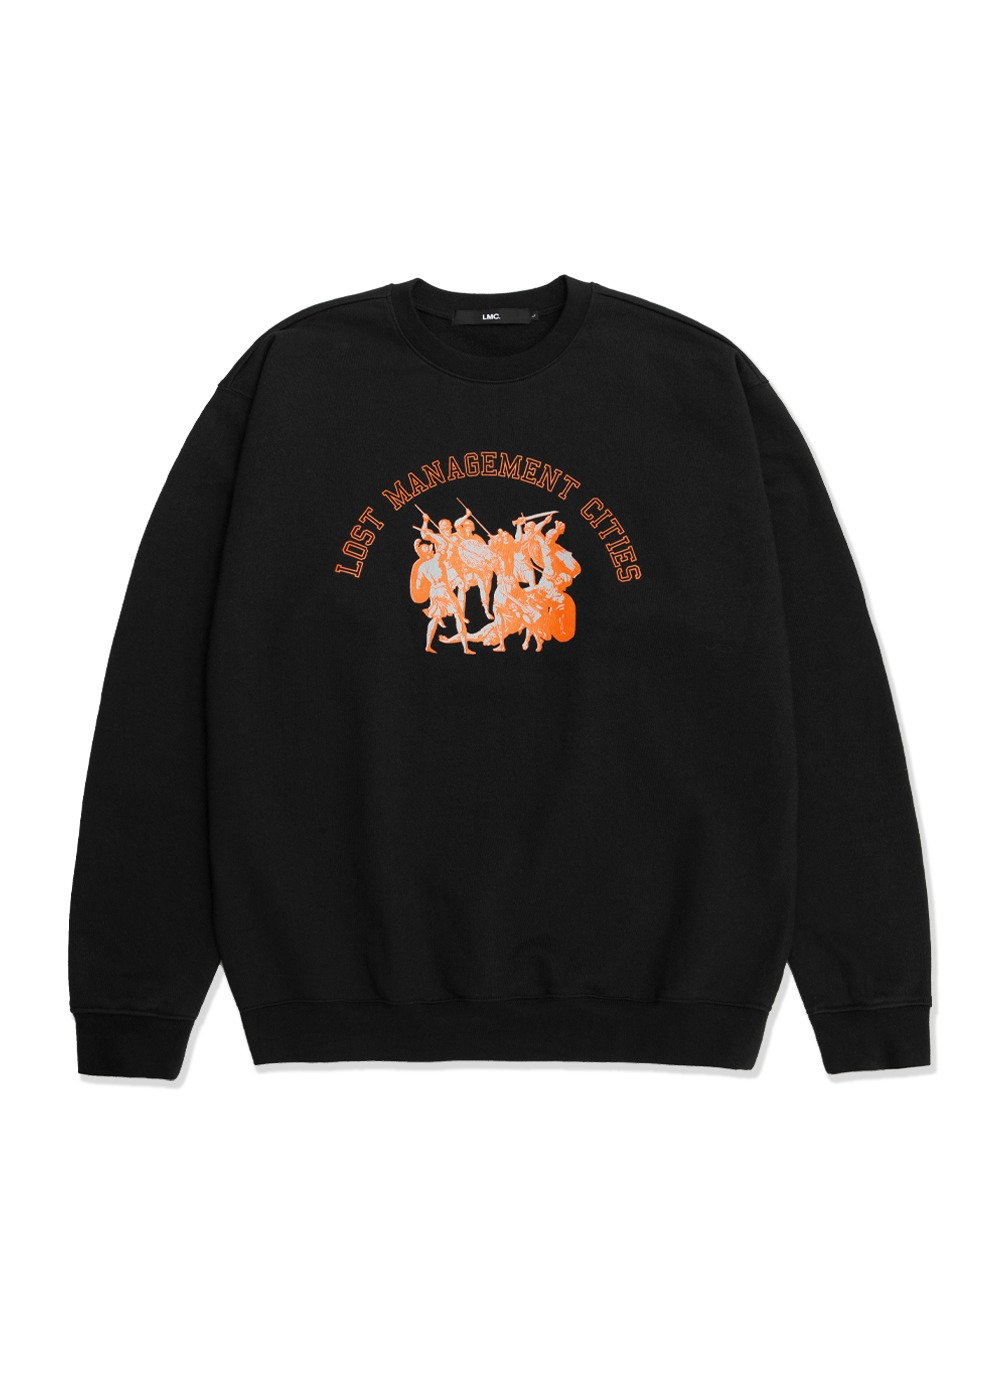 LMC ANCIENT COMBAT SWEATSHIRT black